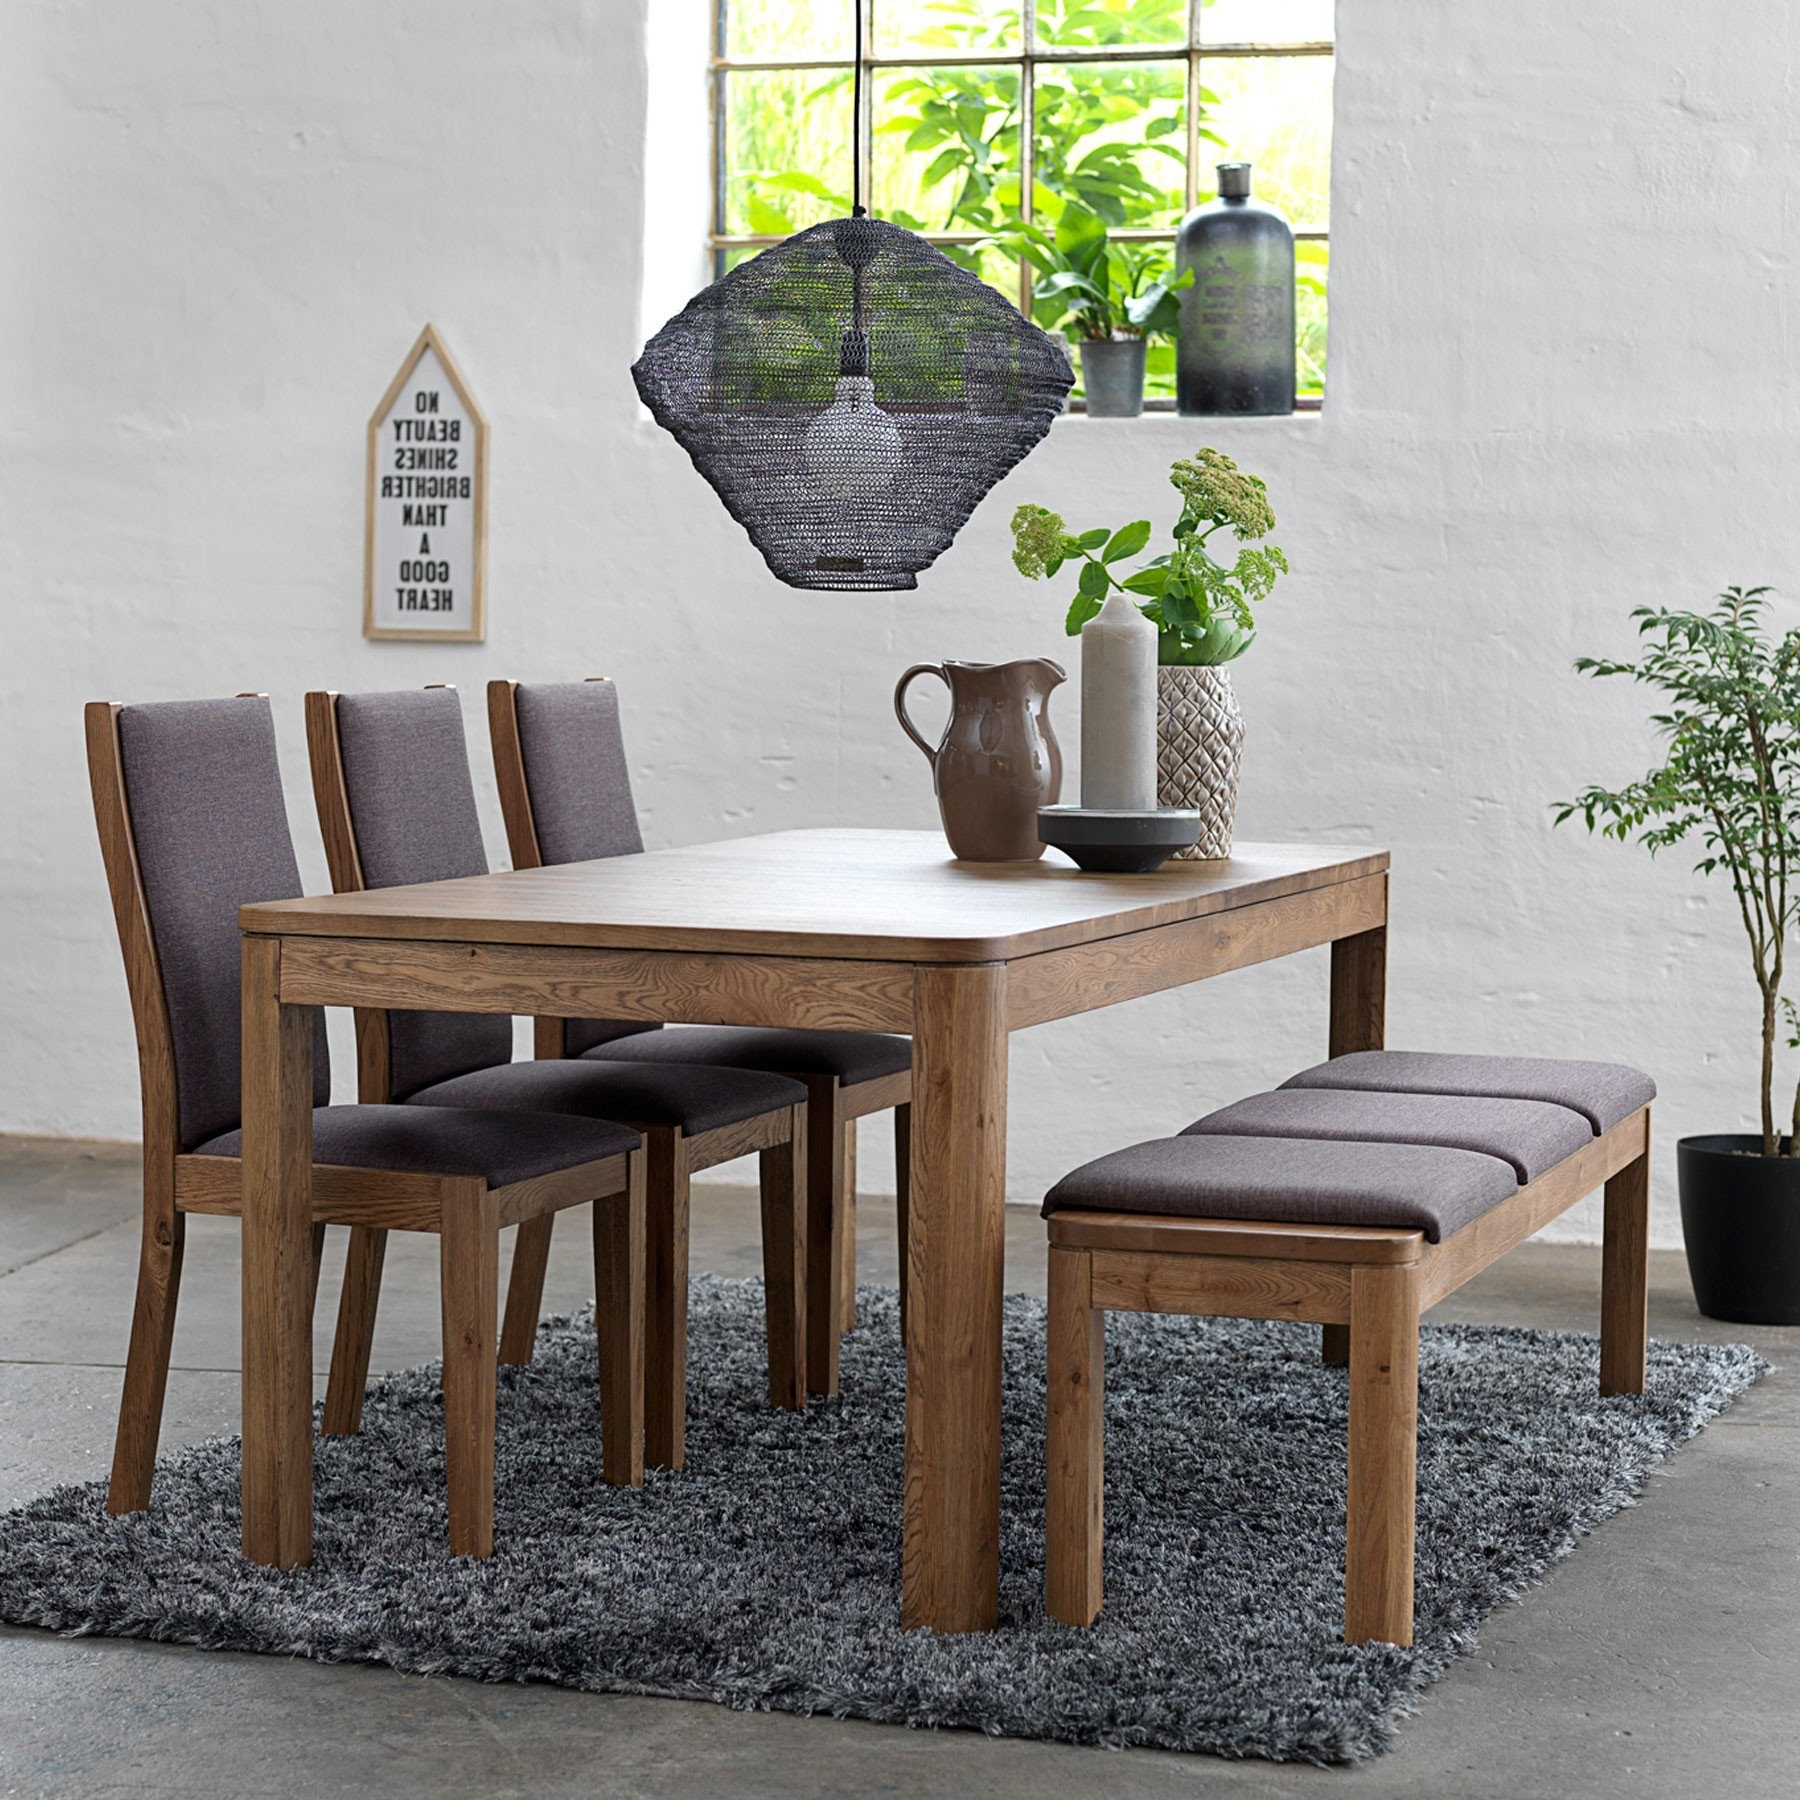 50+ Dining Table With Bench You'll Love In 2020 – Visual Hunt With Most Recently Released Walnut And Antique White Finish Contemporary Country Dining Tables (View 28 of 30)